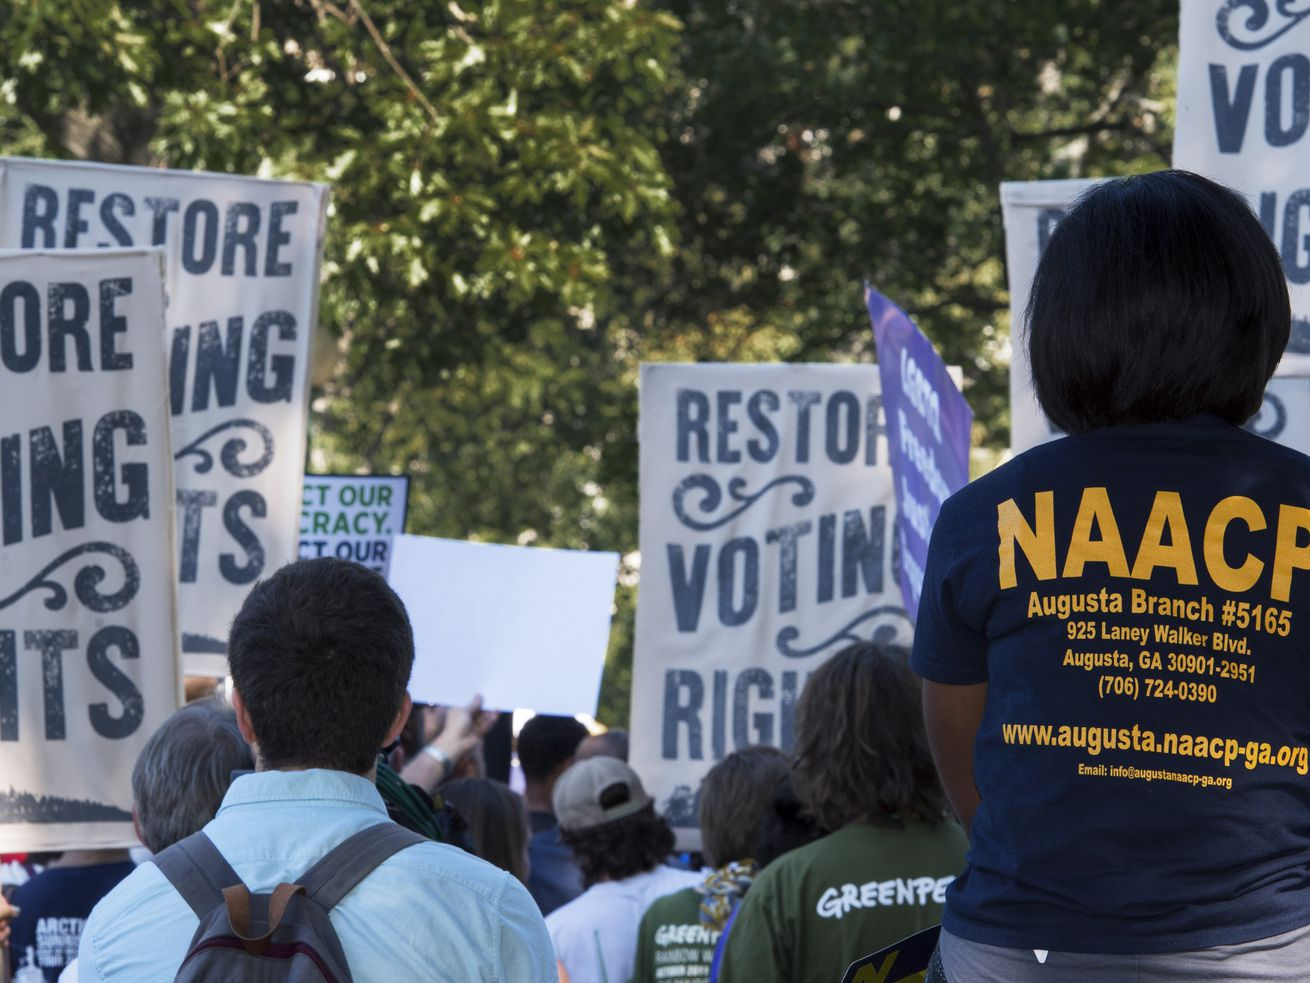 Voting rights supporters and labor unions gather for a Capitol Hill protest calling for the restoration of the Voting Rights Act on September 16, 2015.